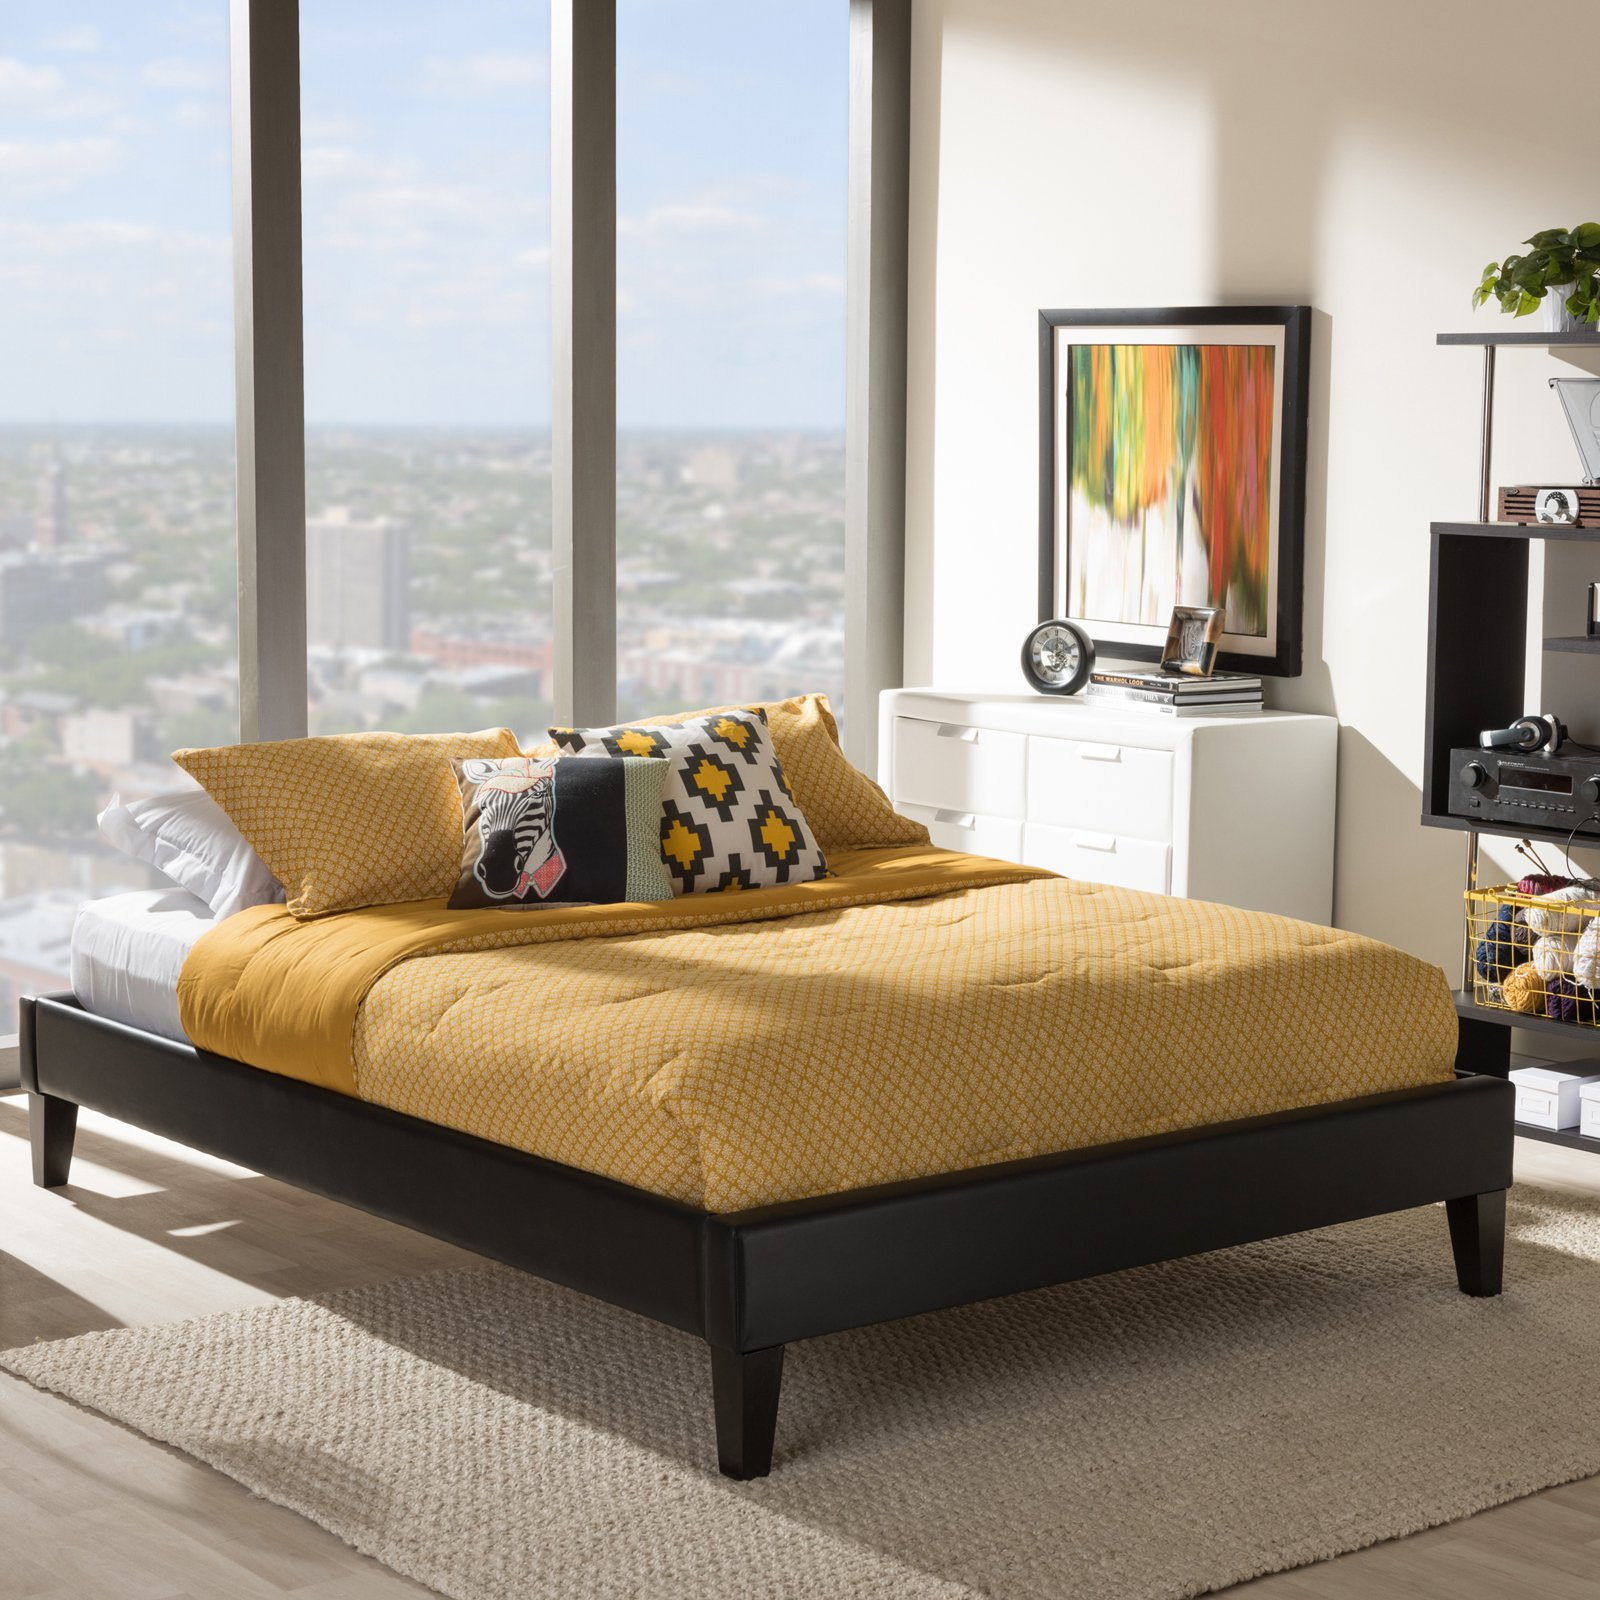 Baxton Studio Lancashire Modern and Contemporary Black Faux Leather Upholstered Full Bed Frame with Tapered Legs